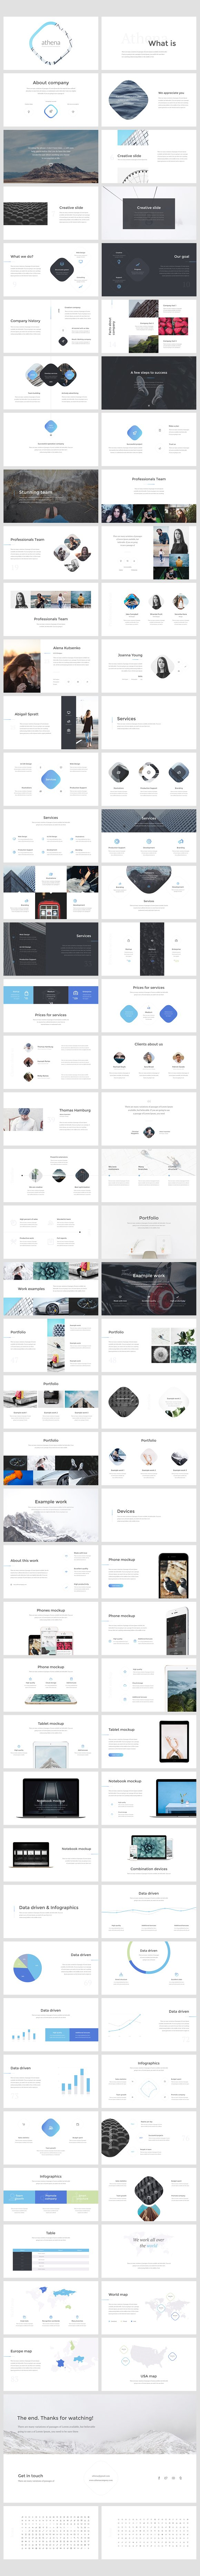 Athena Keynote Presentation in Presentation Templates - product preview 7